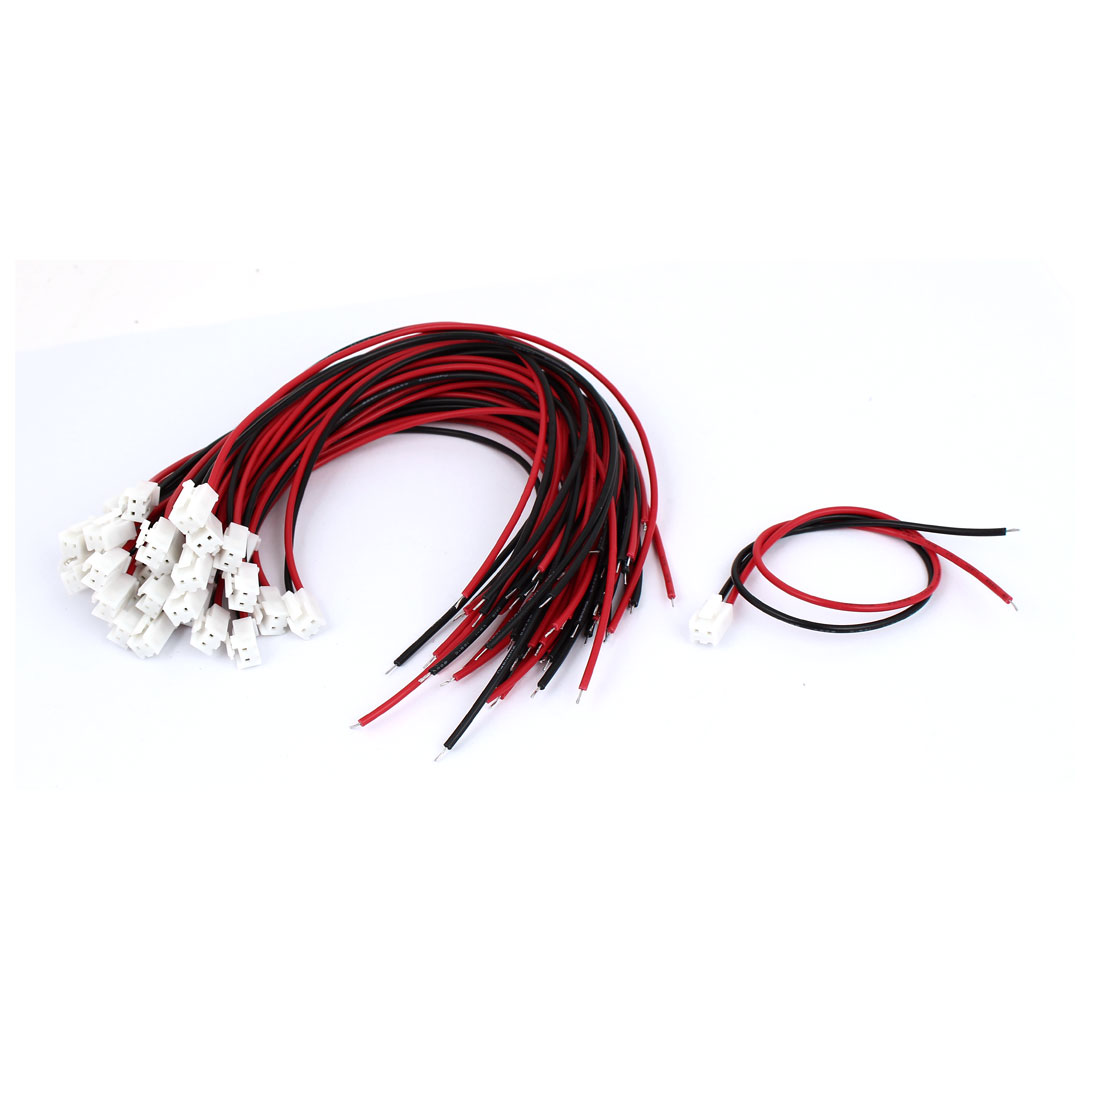 30pcs VH3.96-2P 3.96mm Pin Pitch Connector Leads Cable 300mm Long